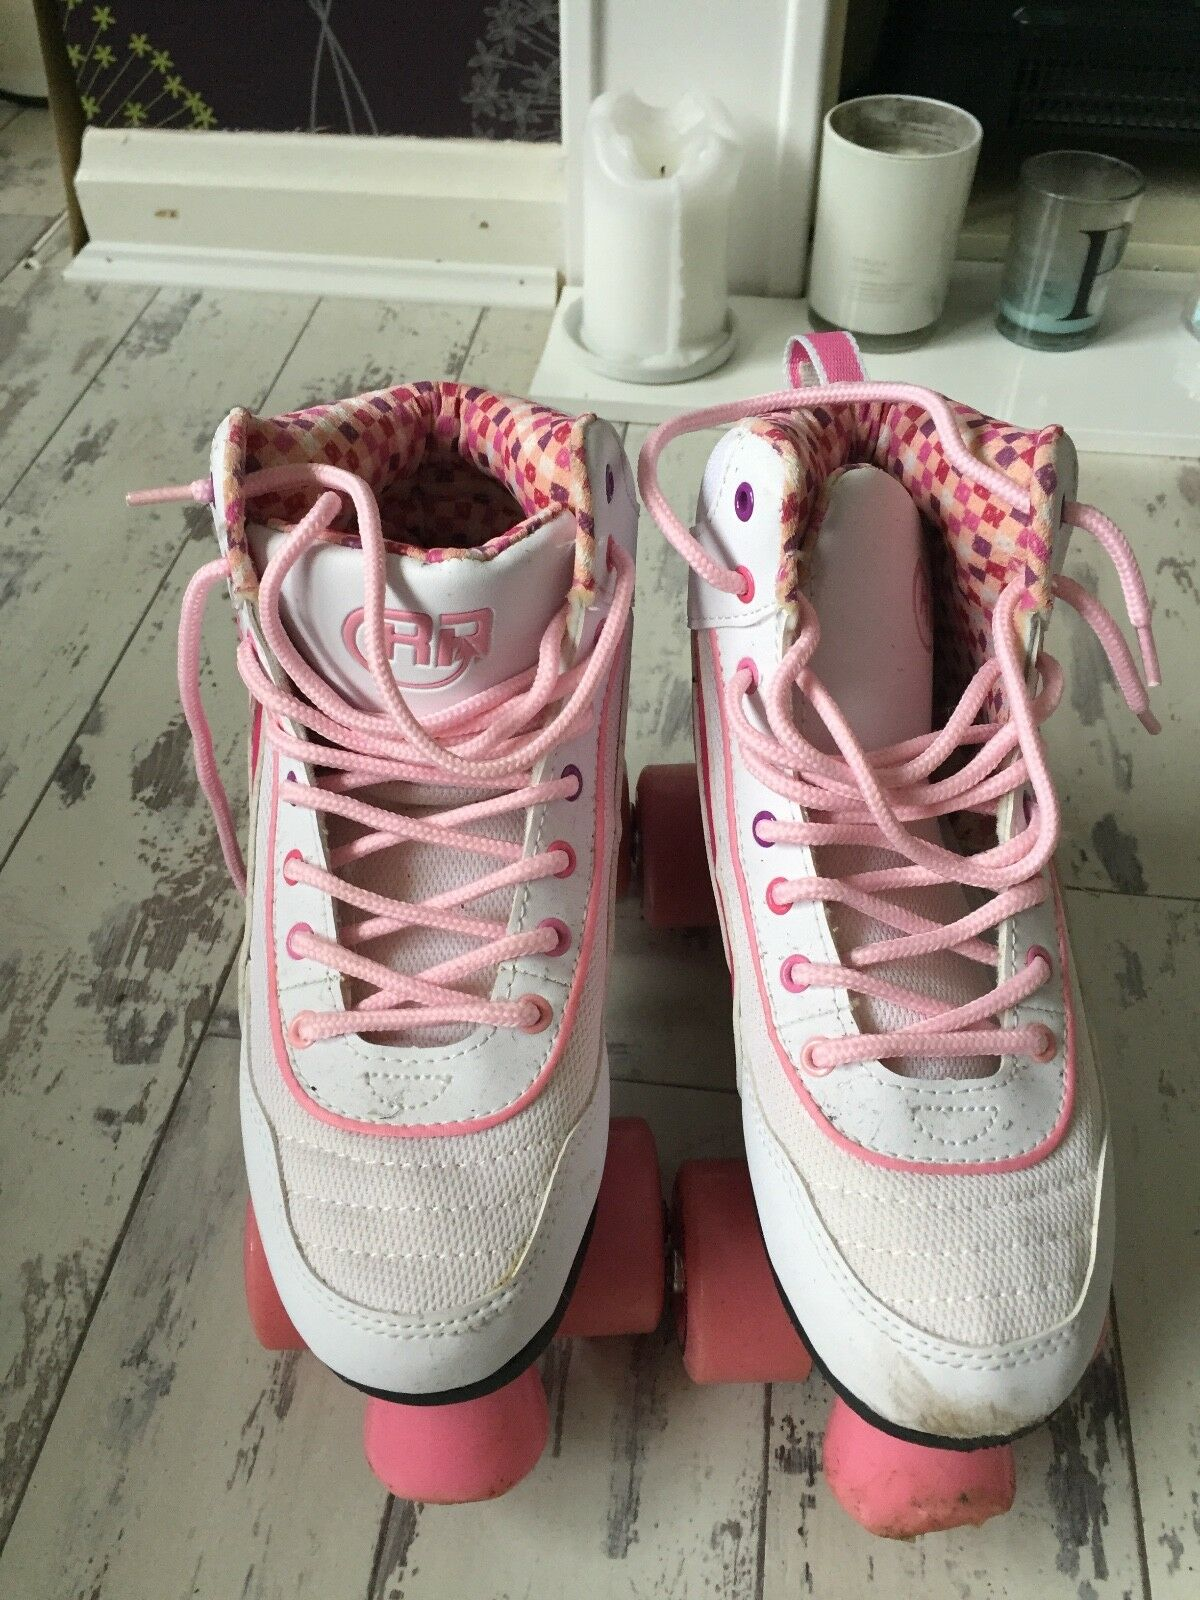 Roller boots size 4 ladies, white and pink